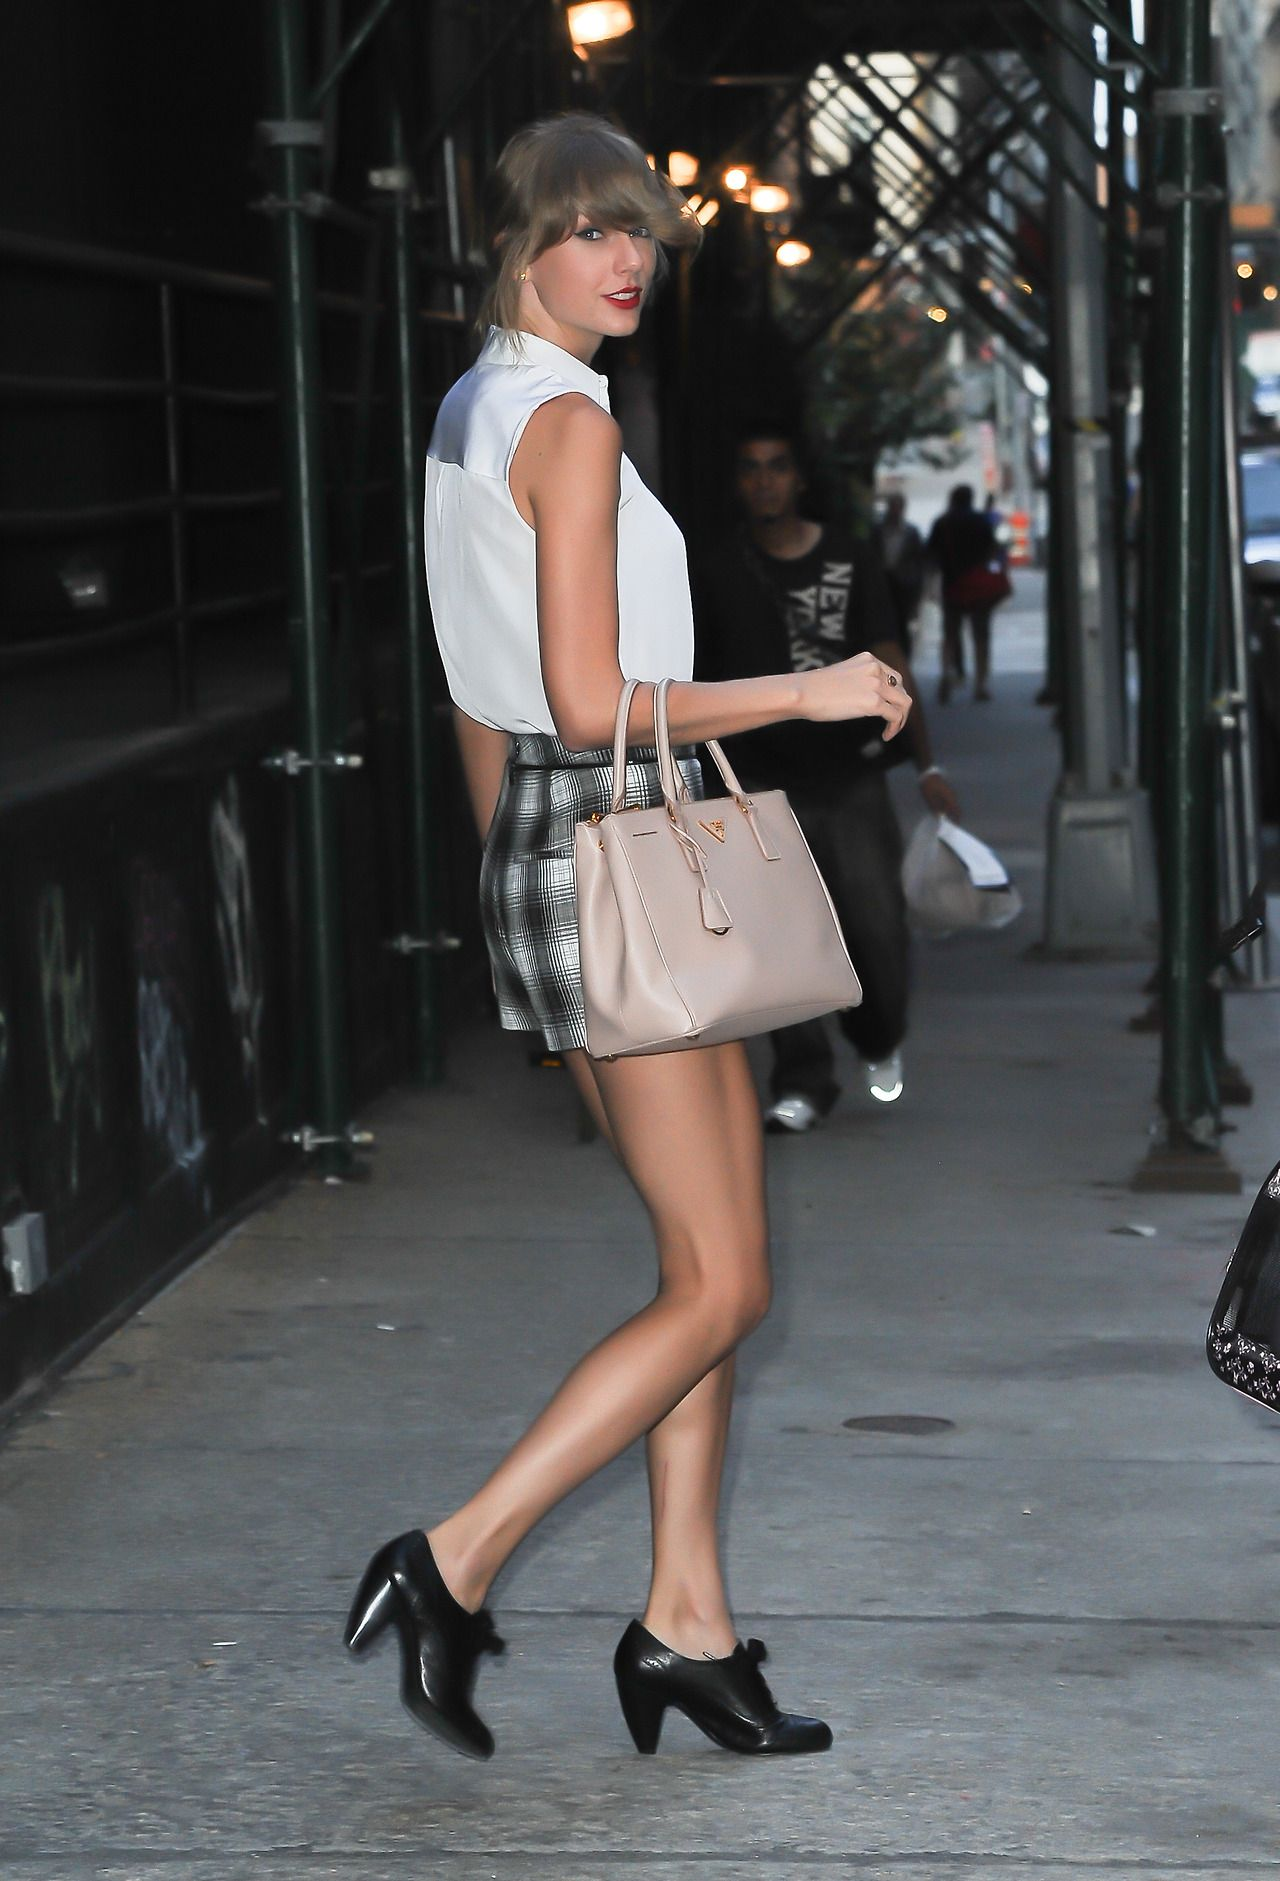 Taylor Swift  Leaving Her Apartment in NYC  August 2014